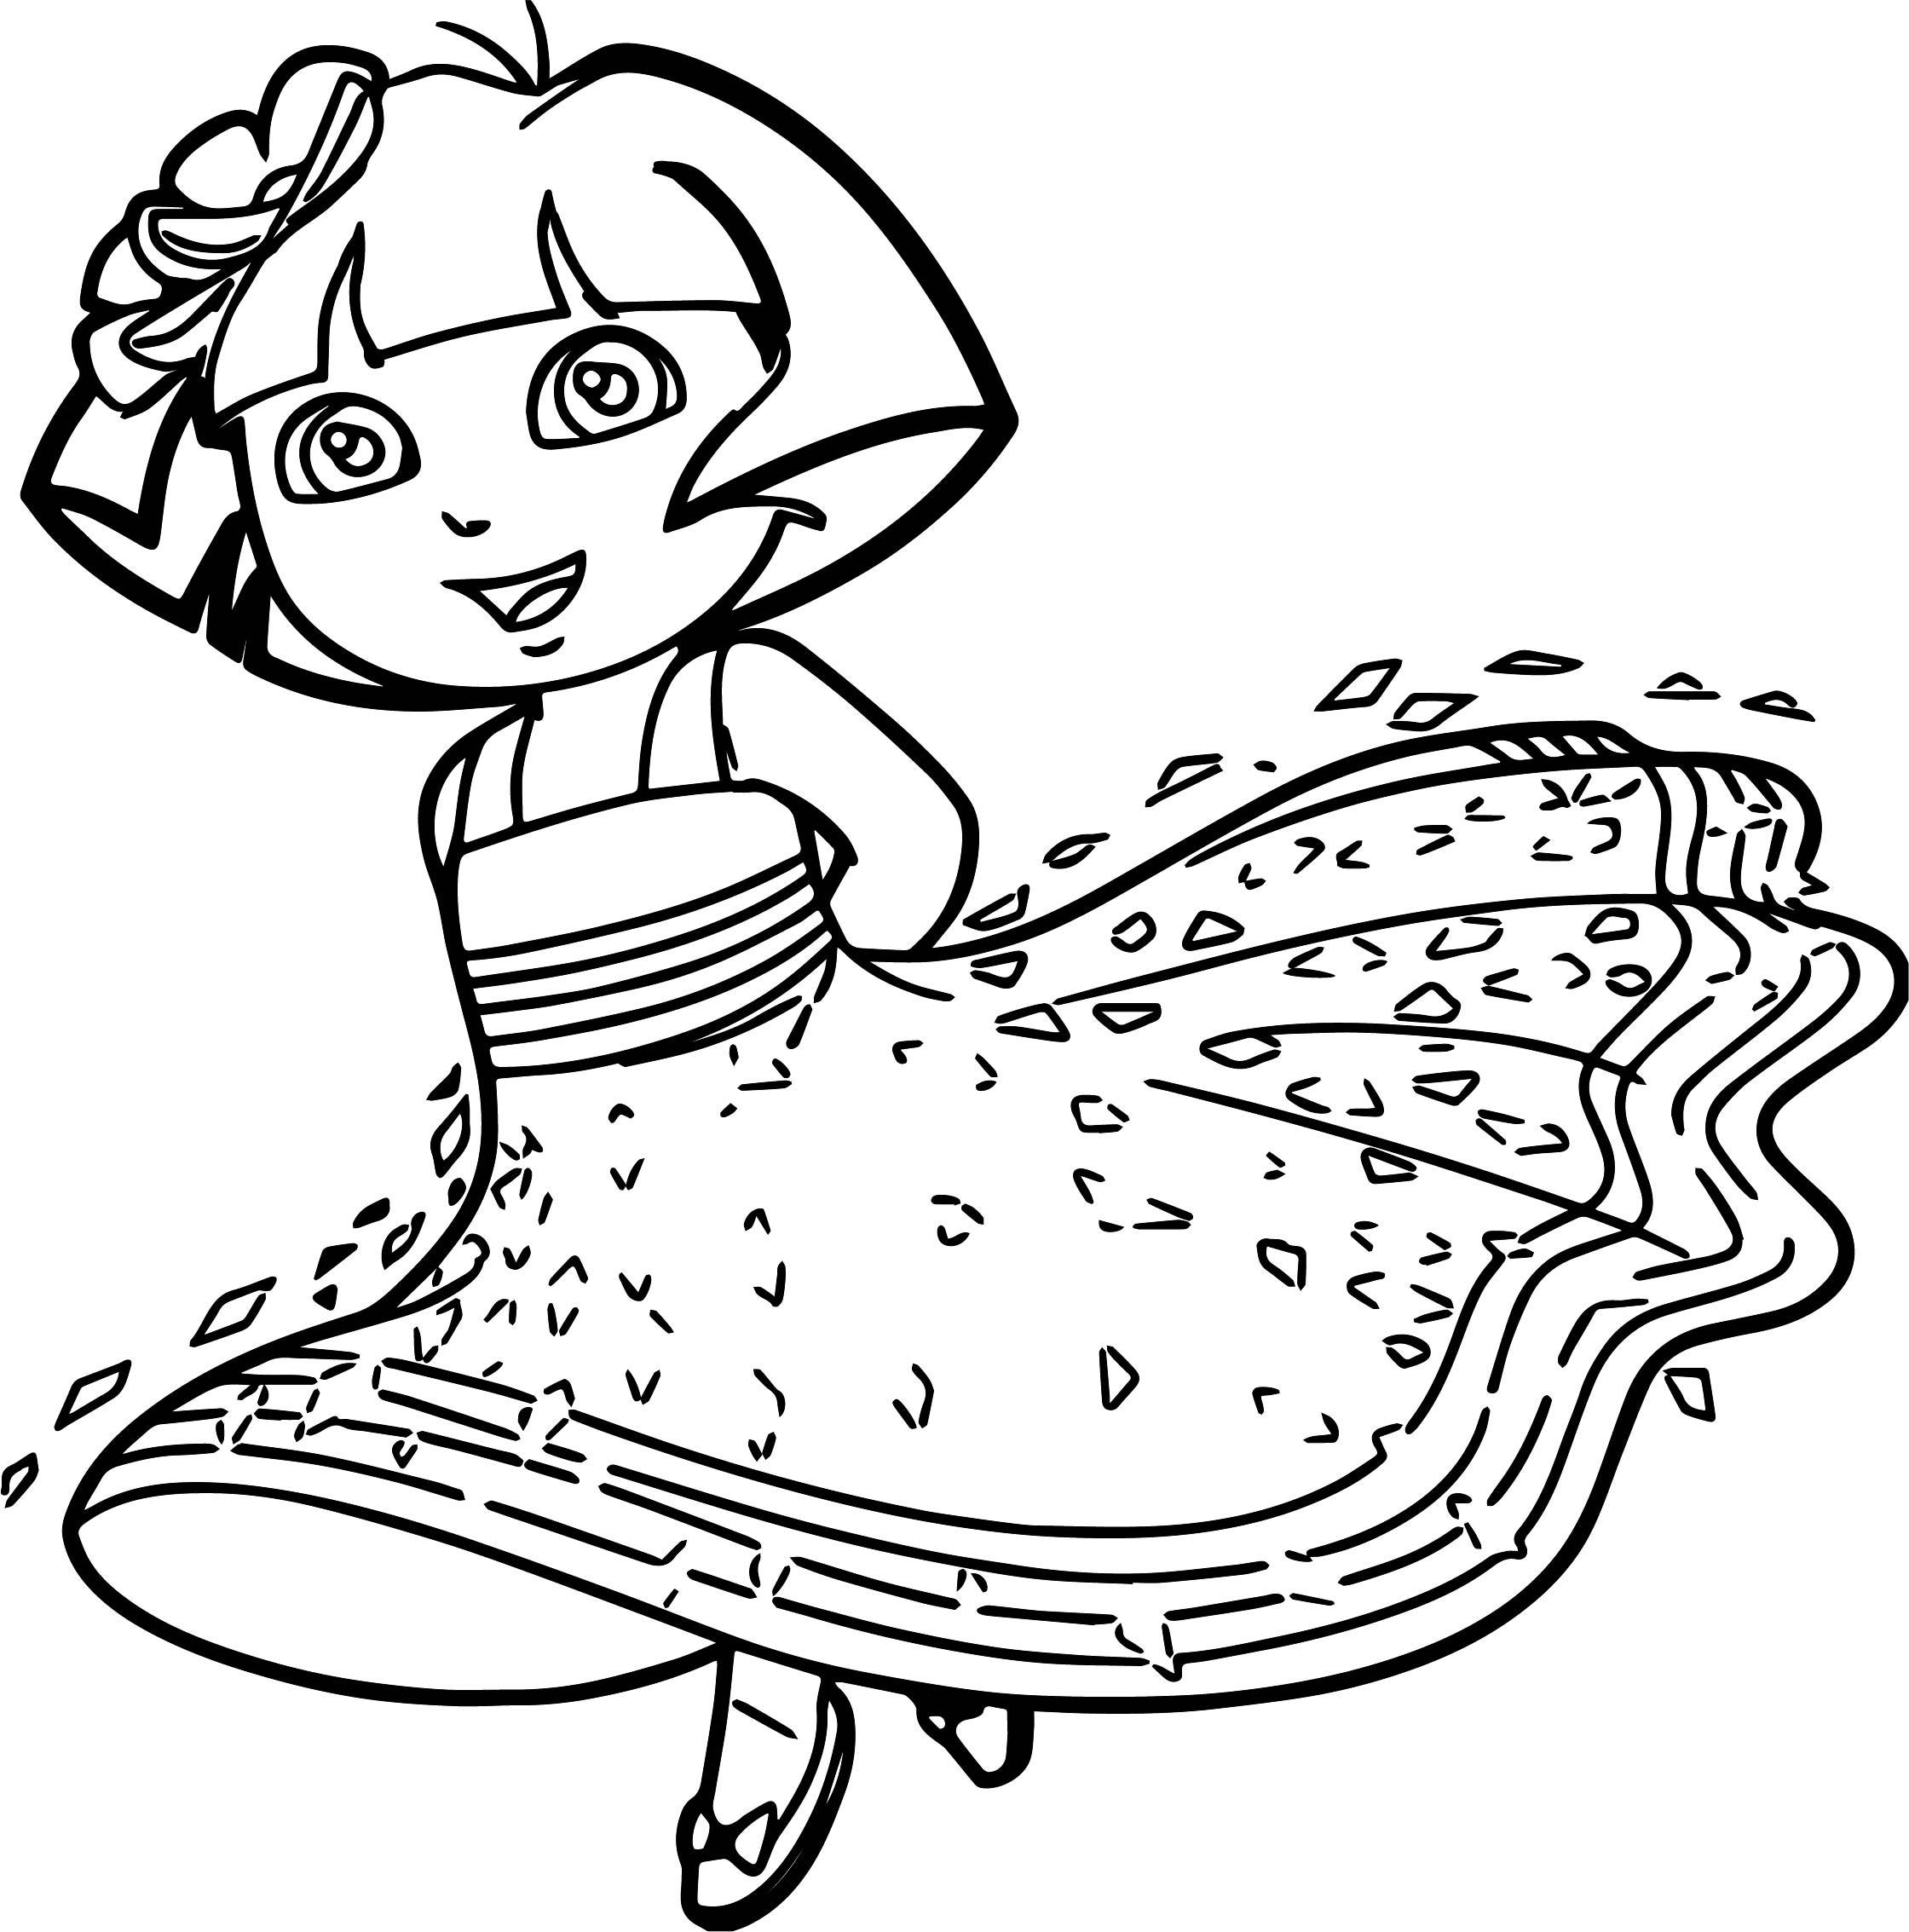 free printable dora coloring pages top 20 printable dora the explorer coloring pages online coloring free pages dora printable